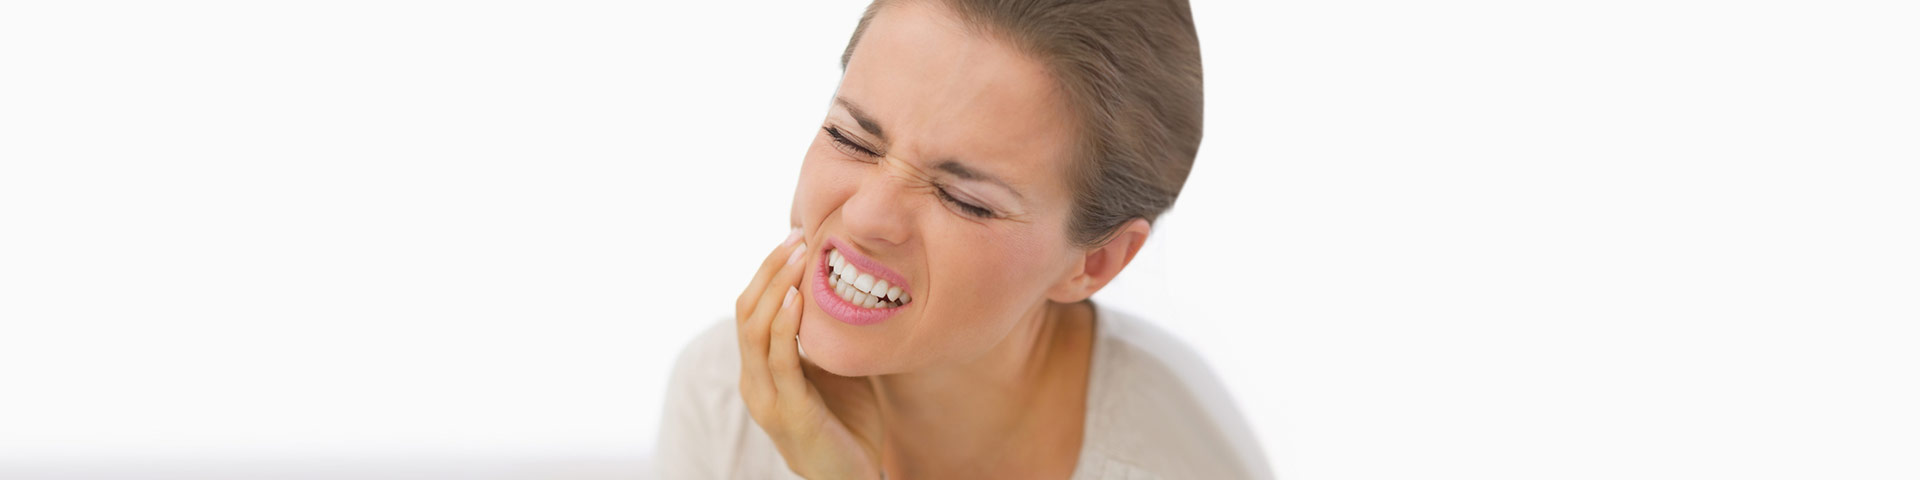 Tmj Treatments In Anchorage Ak Tmj Mouthguards Benefits